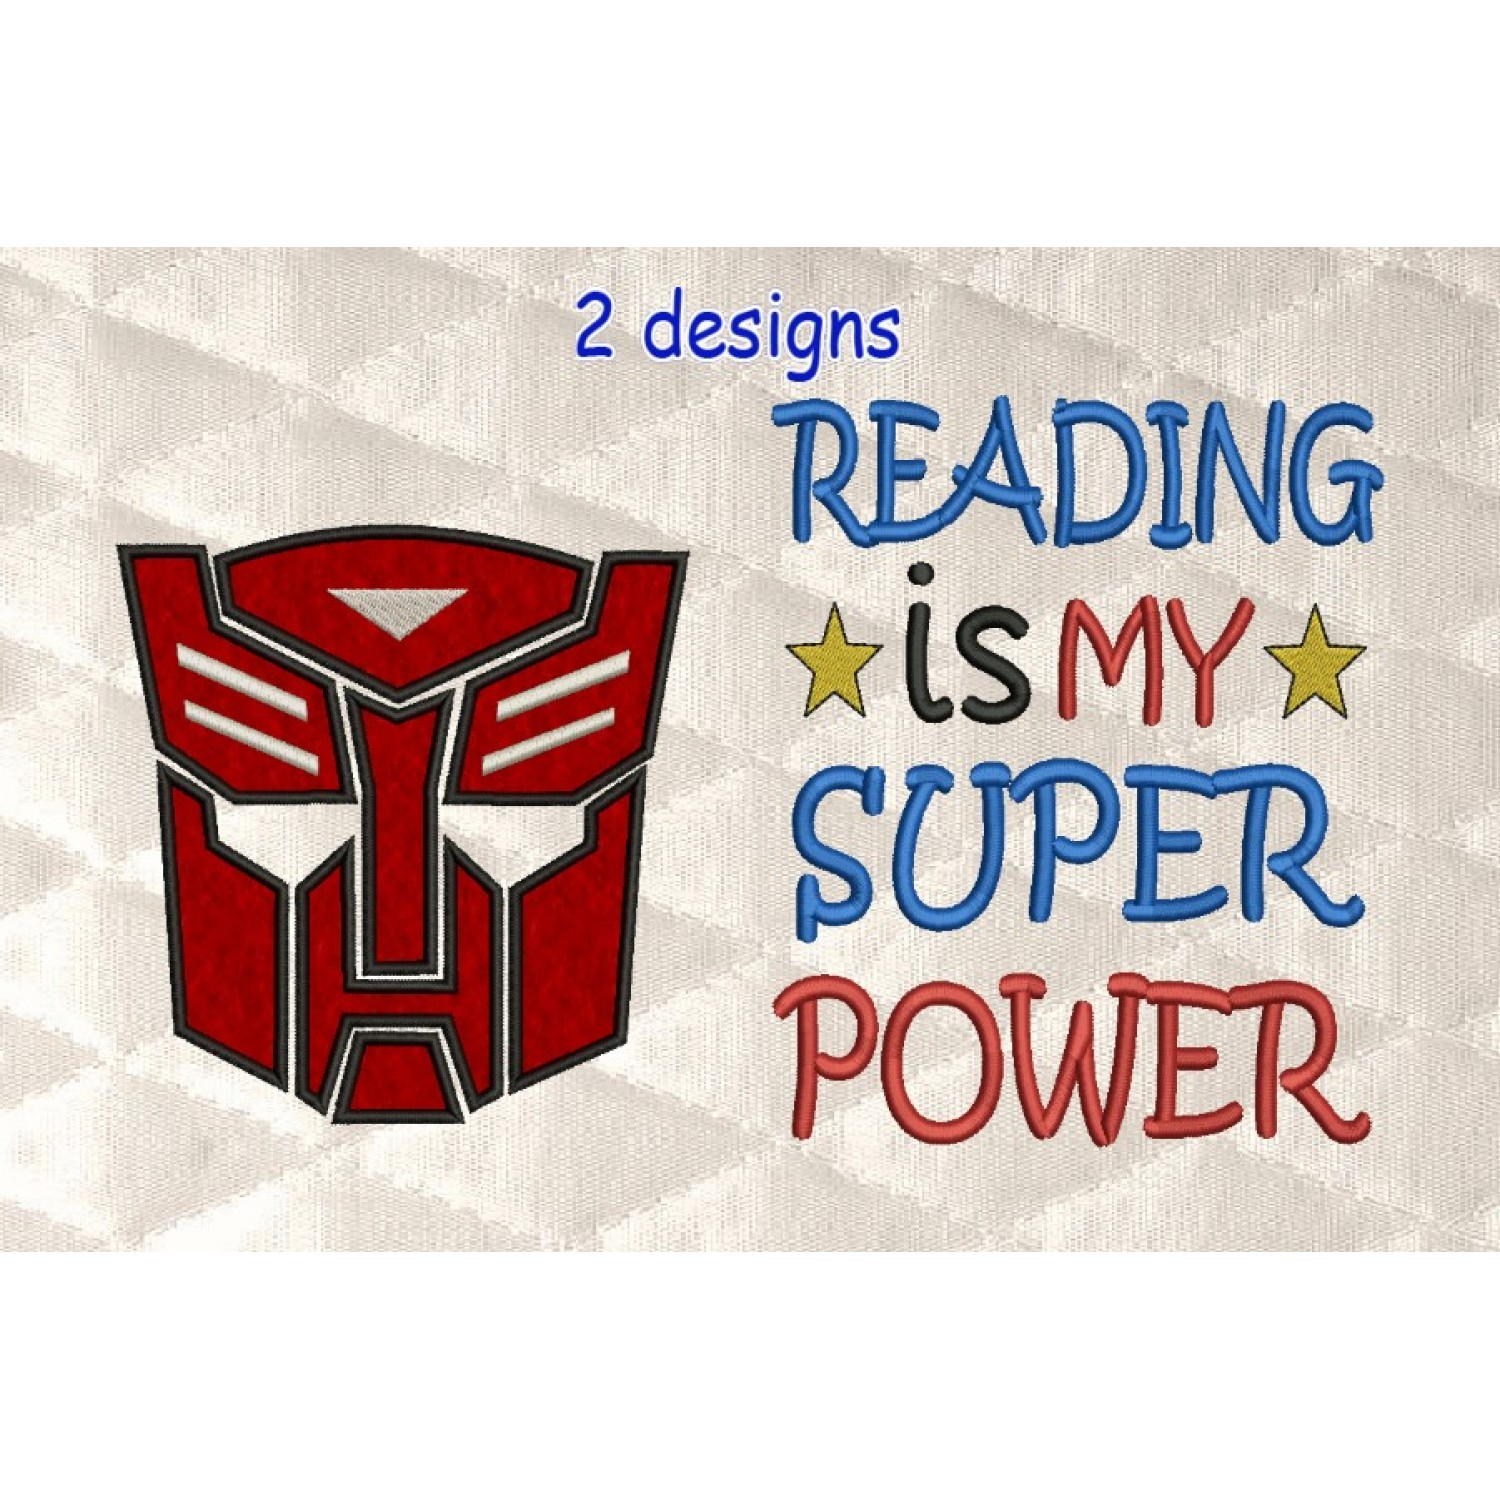 Autobots face with Reading is My Super power